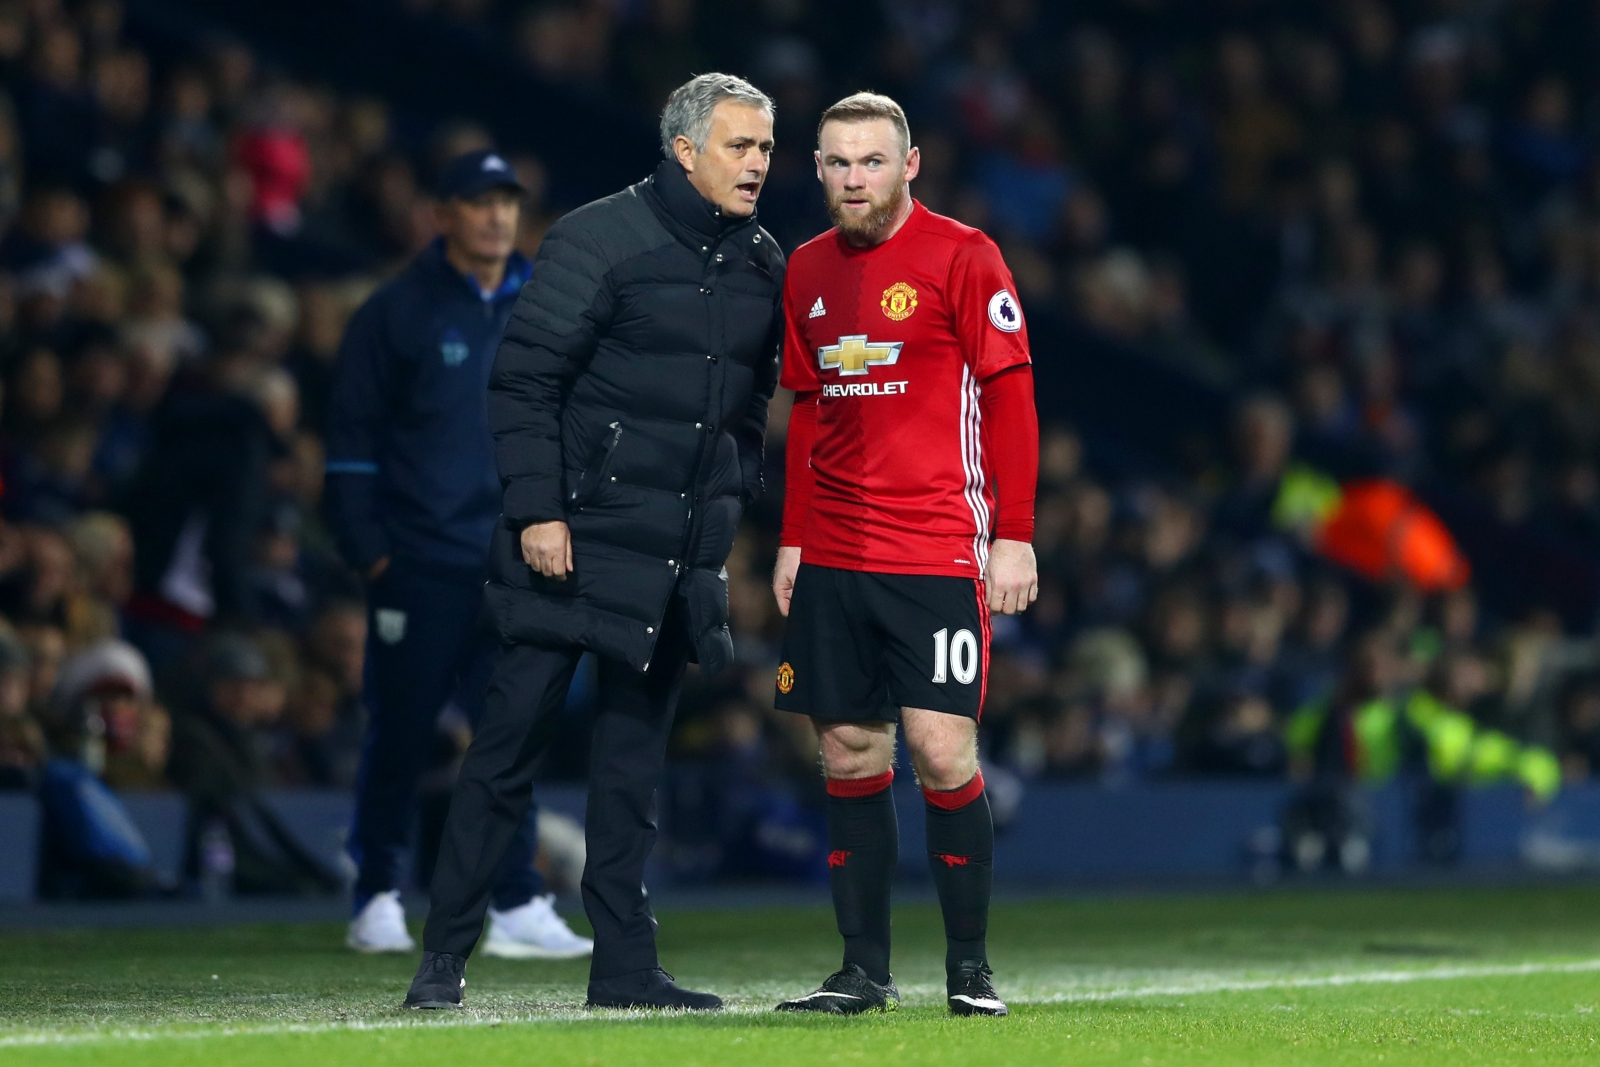 Jose Mourinho unsure if Wayne Rooney will still be at Manchester United in May